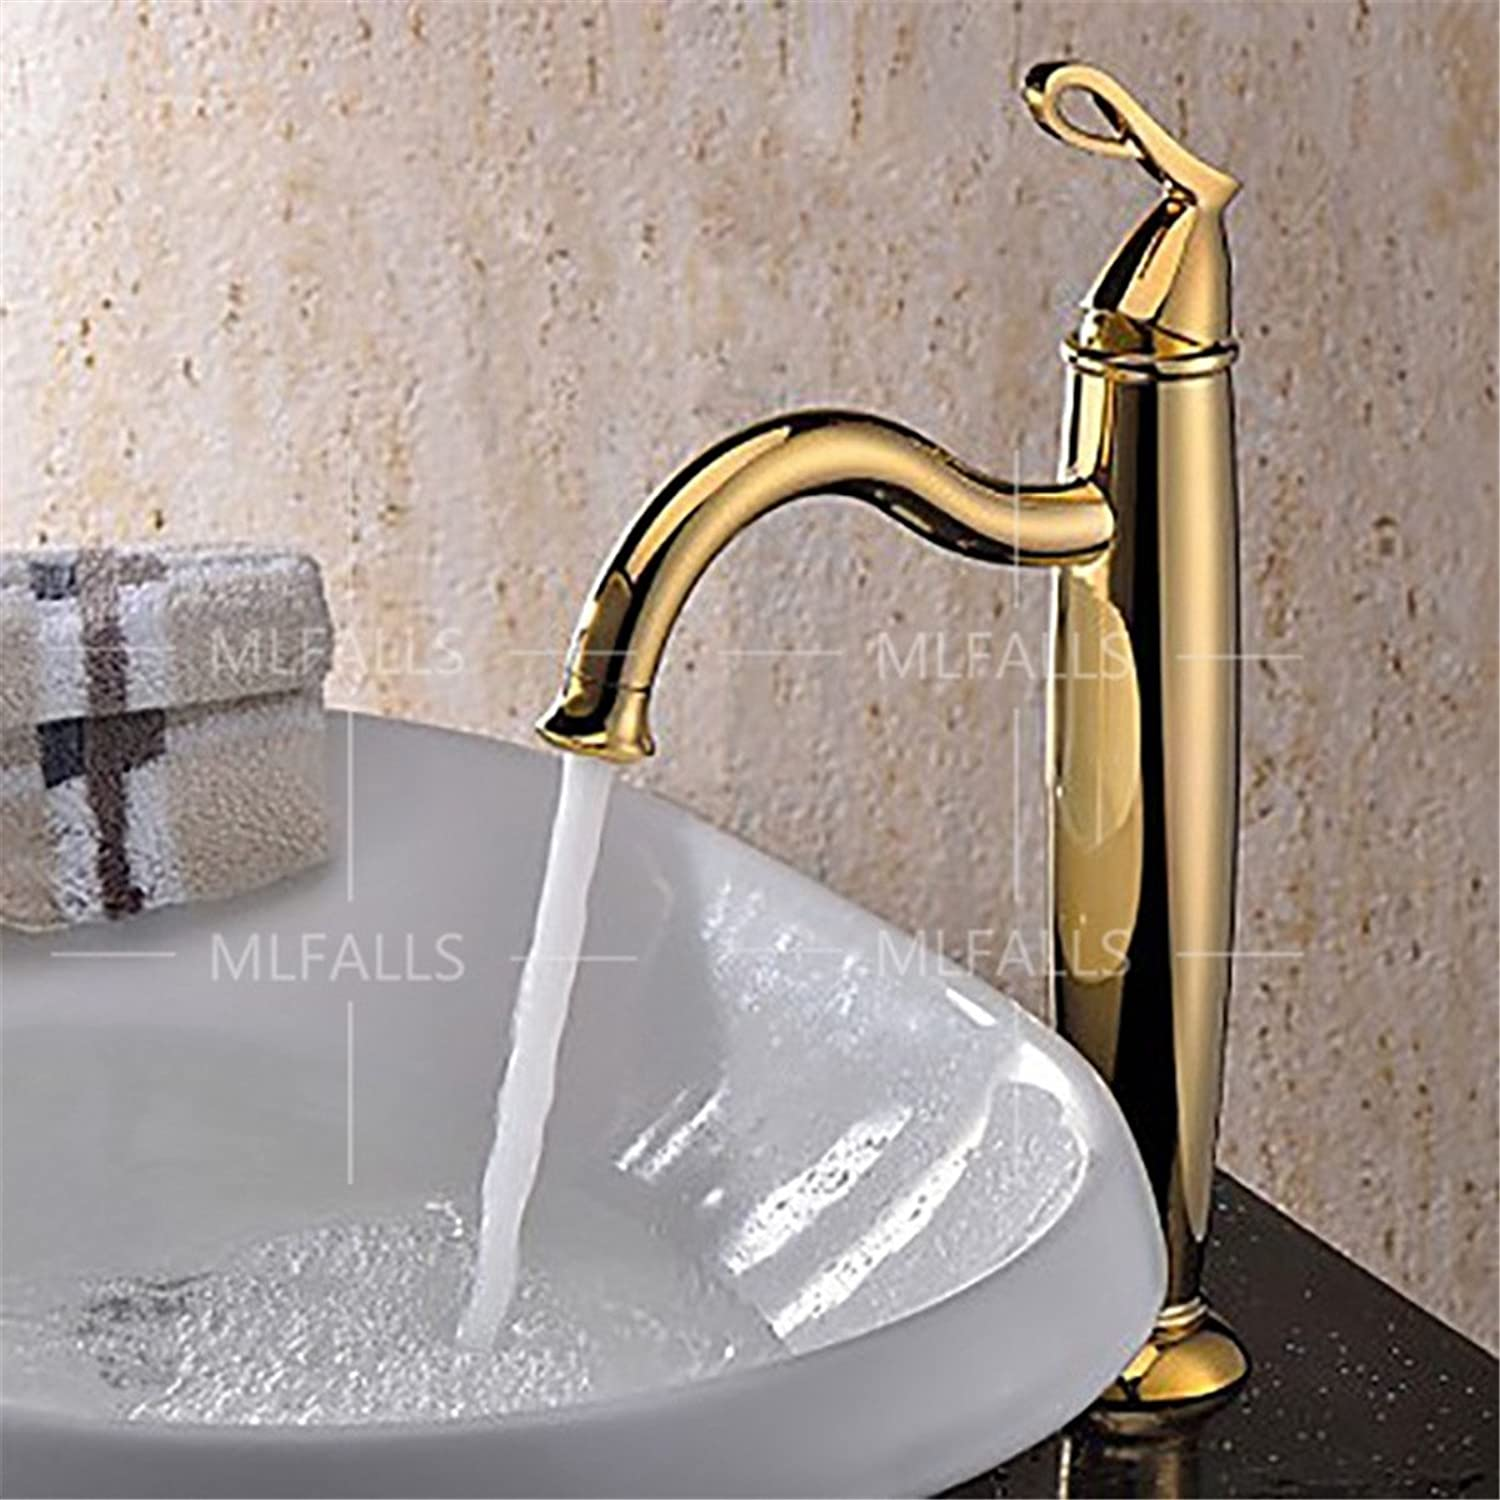 Modern gold Heightening Hot & Cold Mixing Valves Bathroom Basin Faucet   Bathroom Sink Faucet Basin faucet Bathroom Sink Tap with Bathroom Basin Mixer Tap Bathroom Mixer Tap Bathroom Basin Sink Faucet Bathroom basin faucet Bathroom Sink Taps Bathroom Mixe